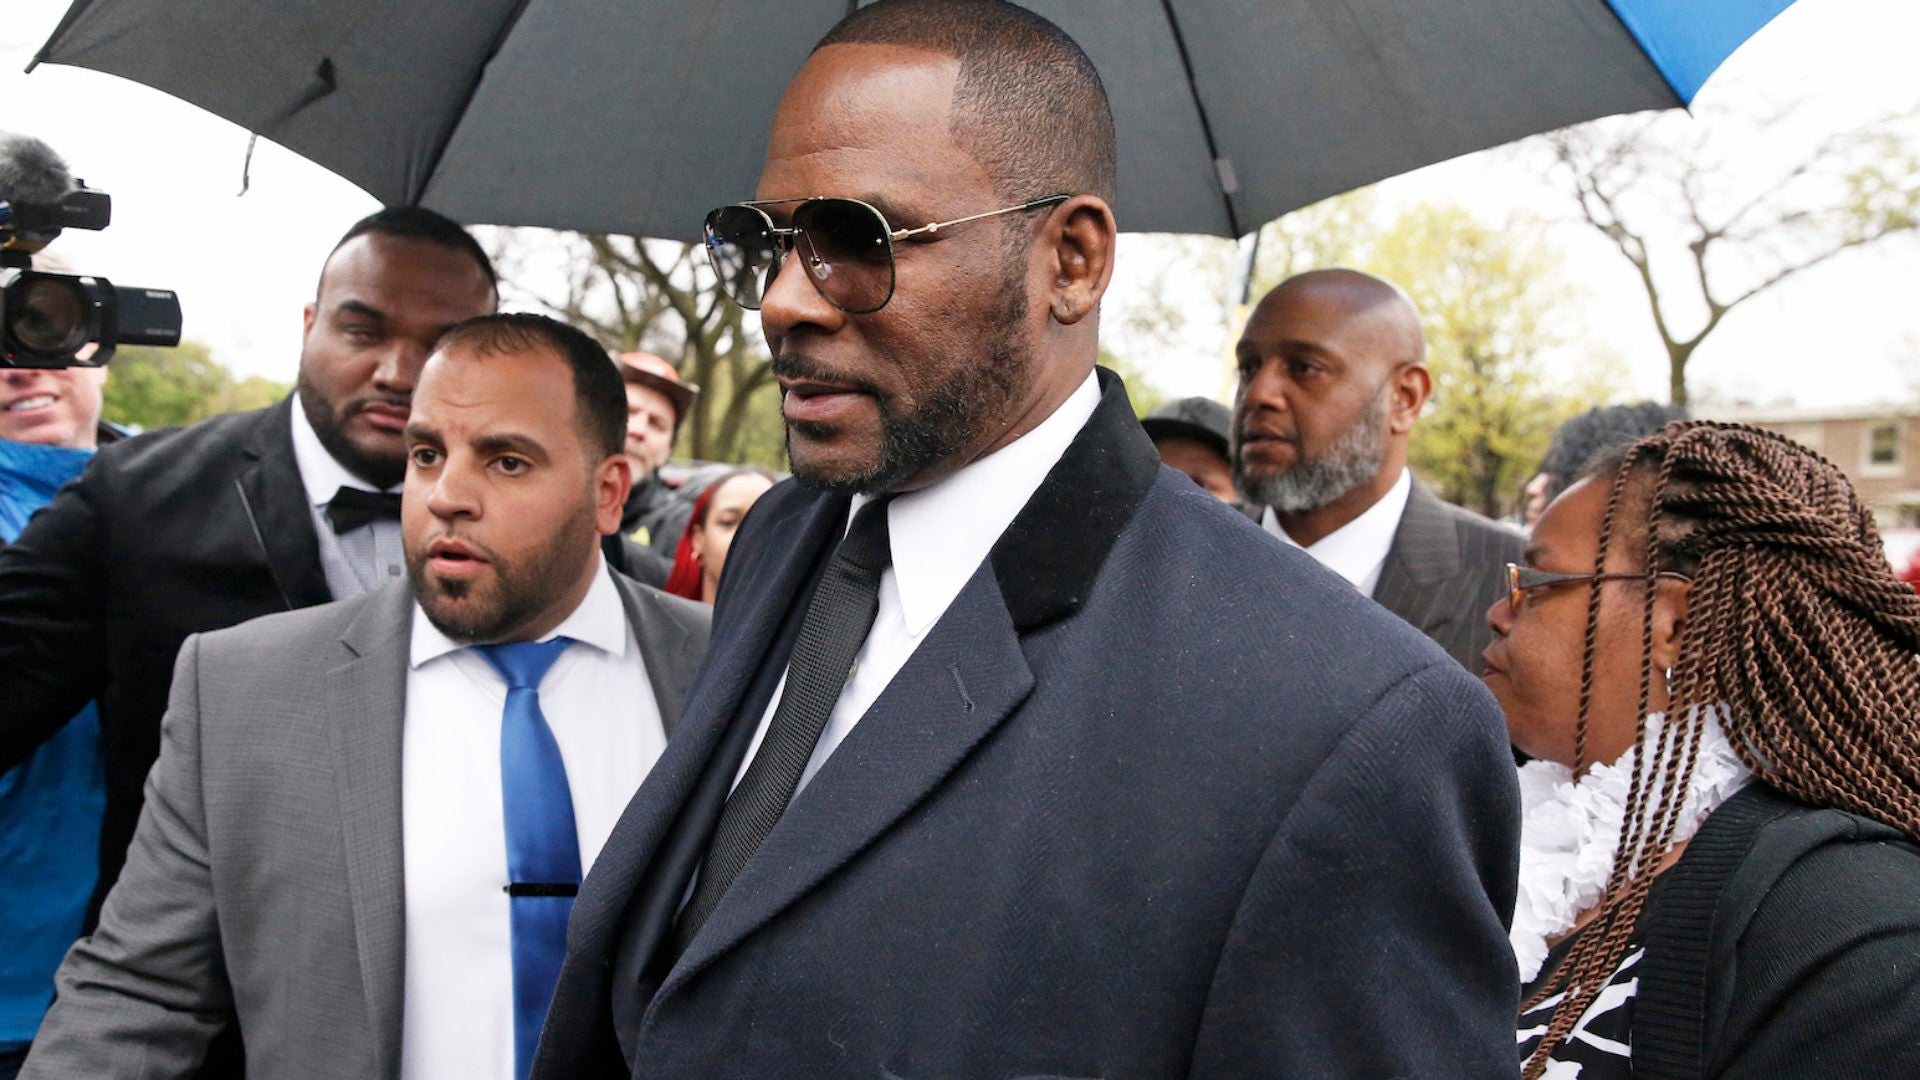 R. Kelly Now Facing 11 New Felony Sexual Assault Charges